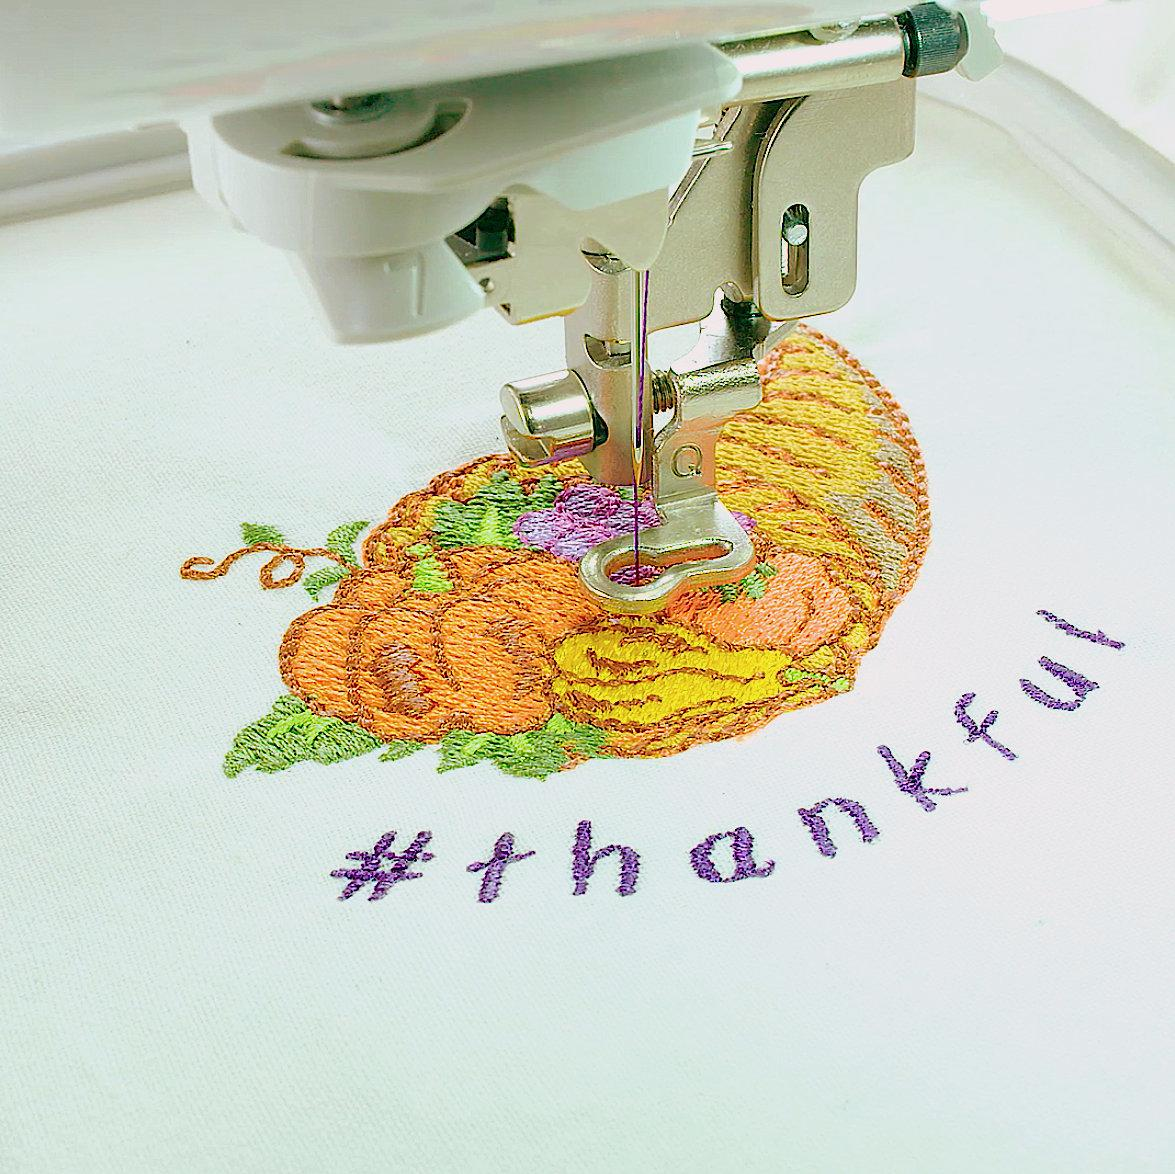 Embroidery lettering editing